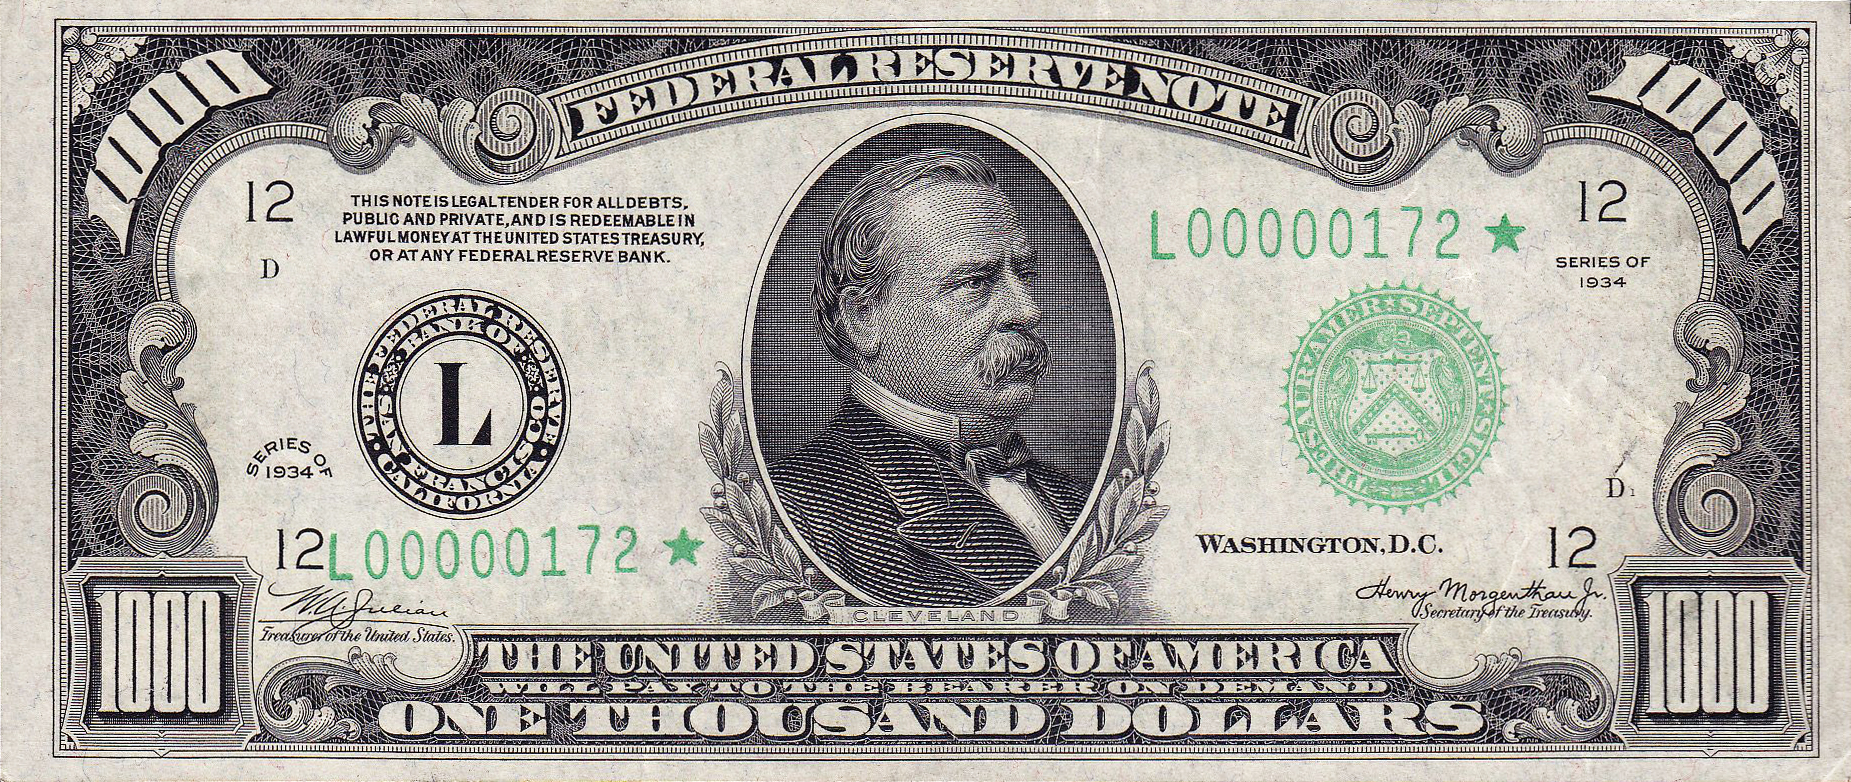 File:1000 USD note; series of 1934; obverse.jpg